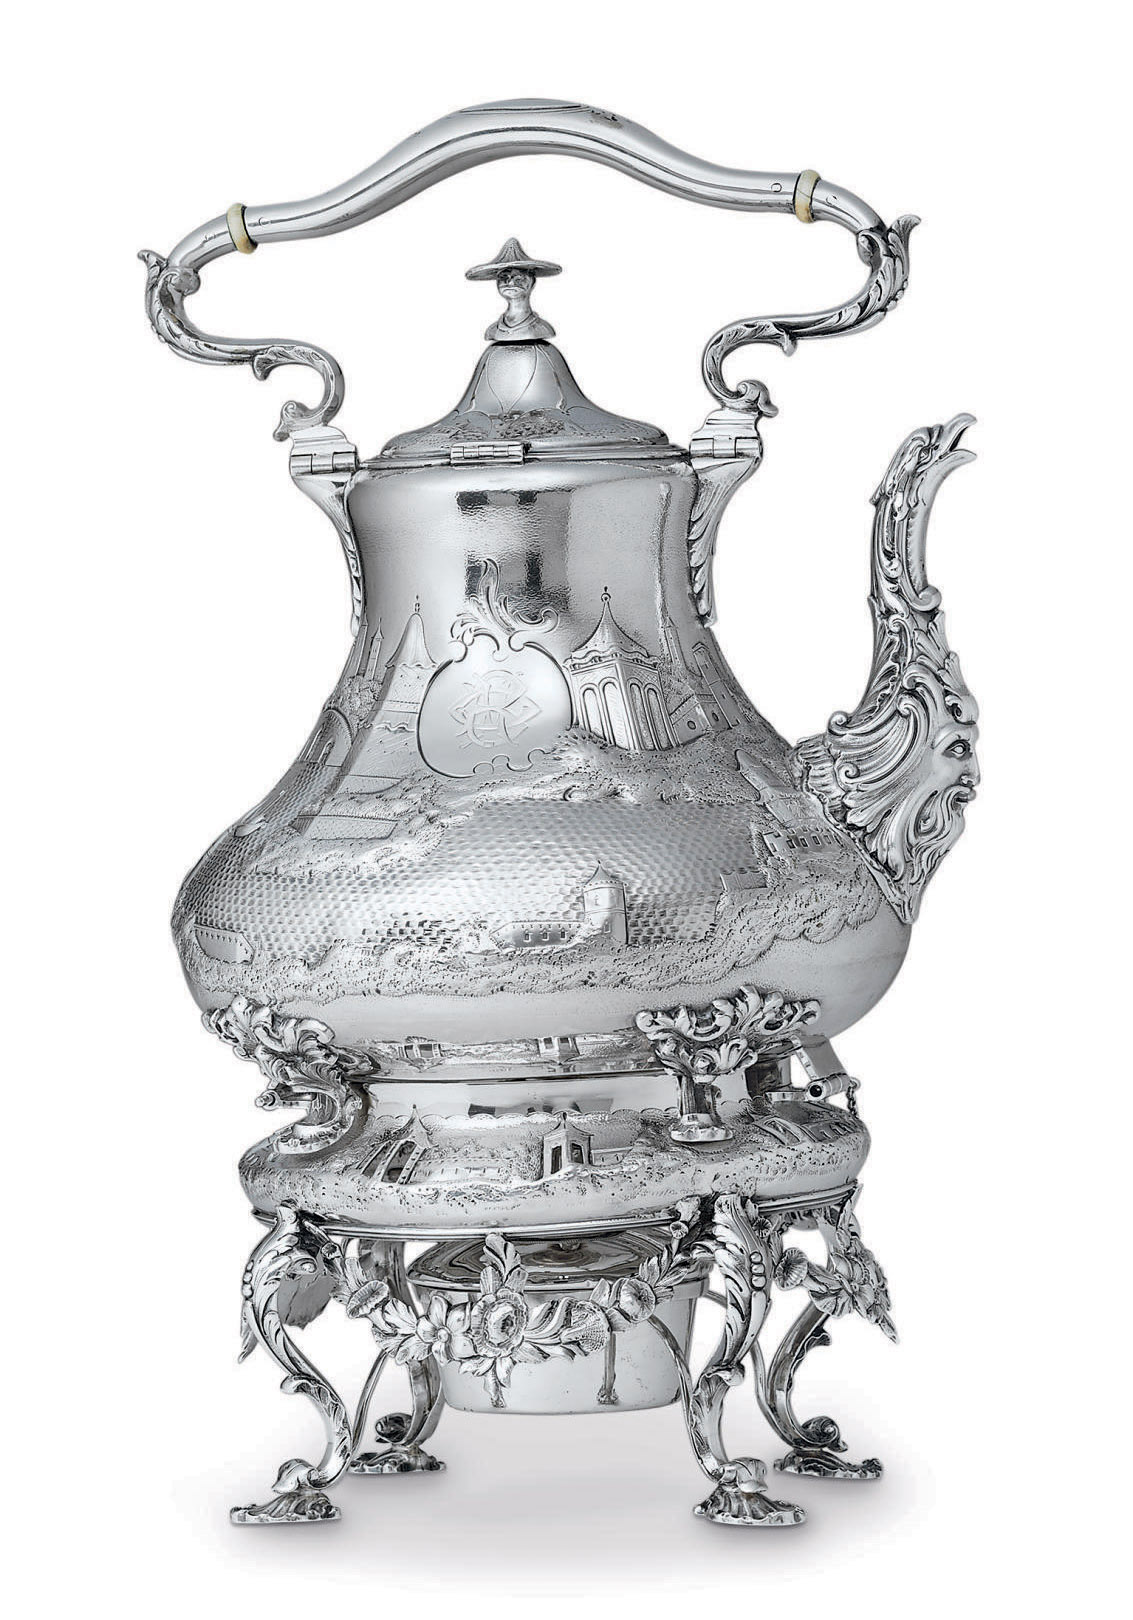 AN AMERICAN SILVER KETTLE-ON-STAND**